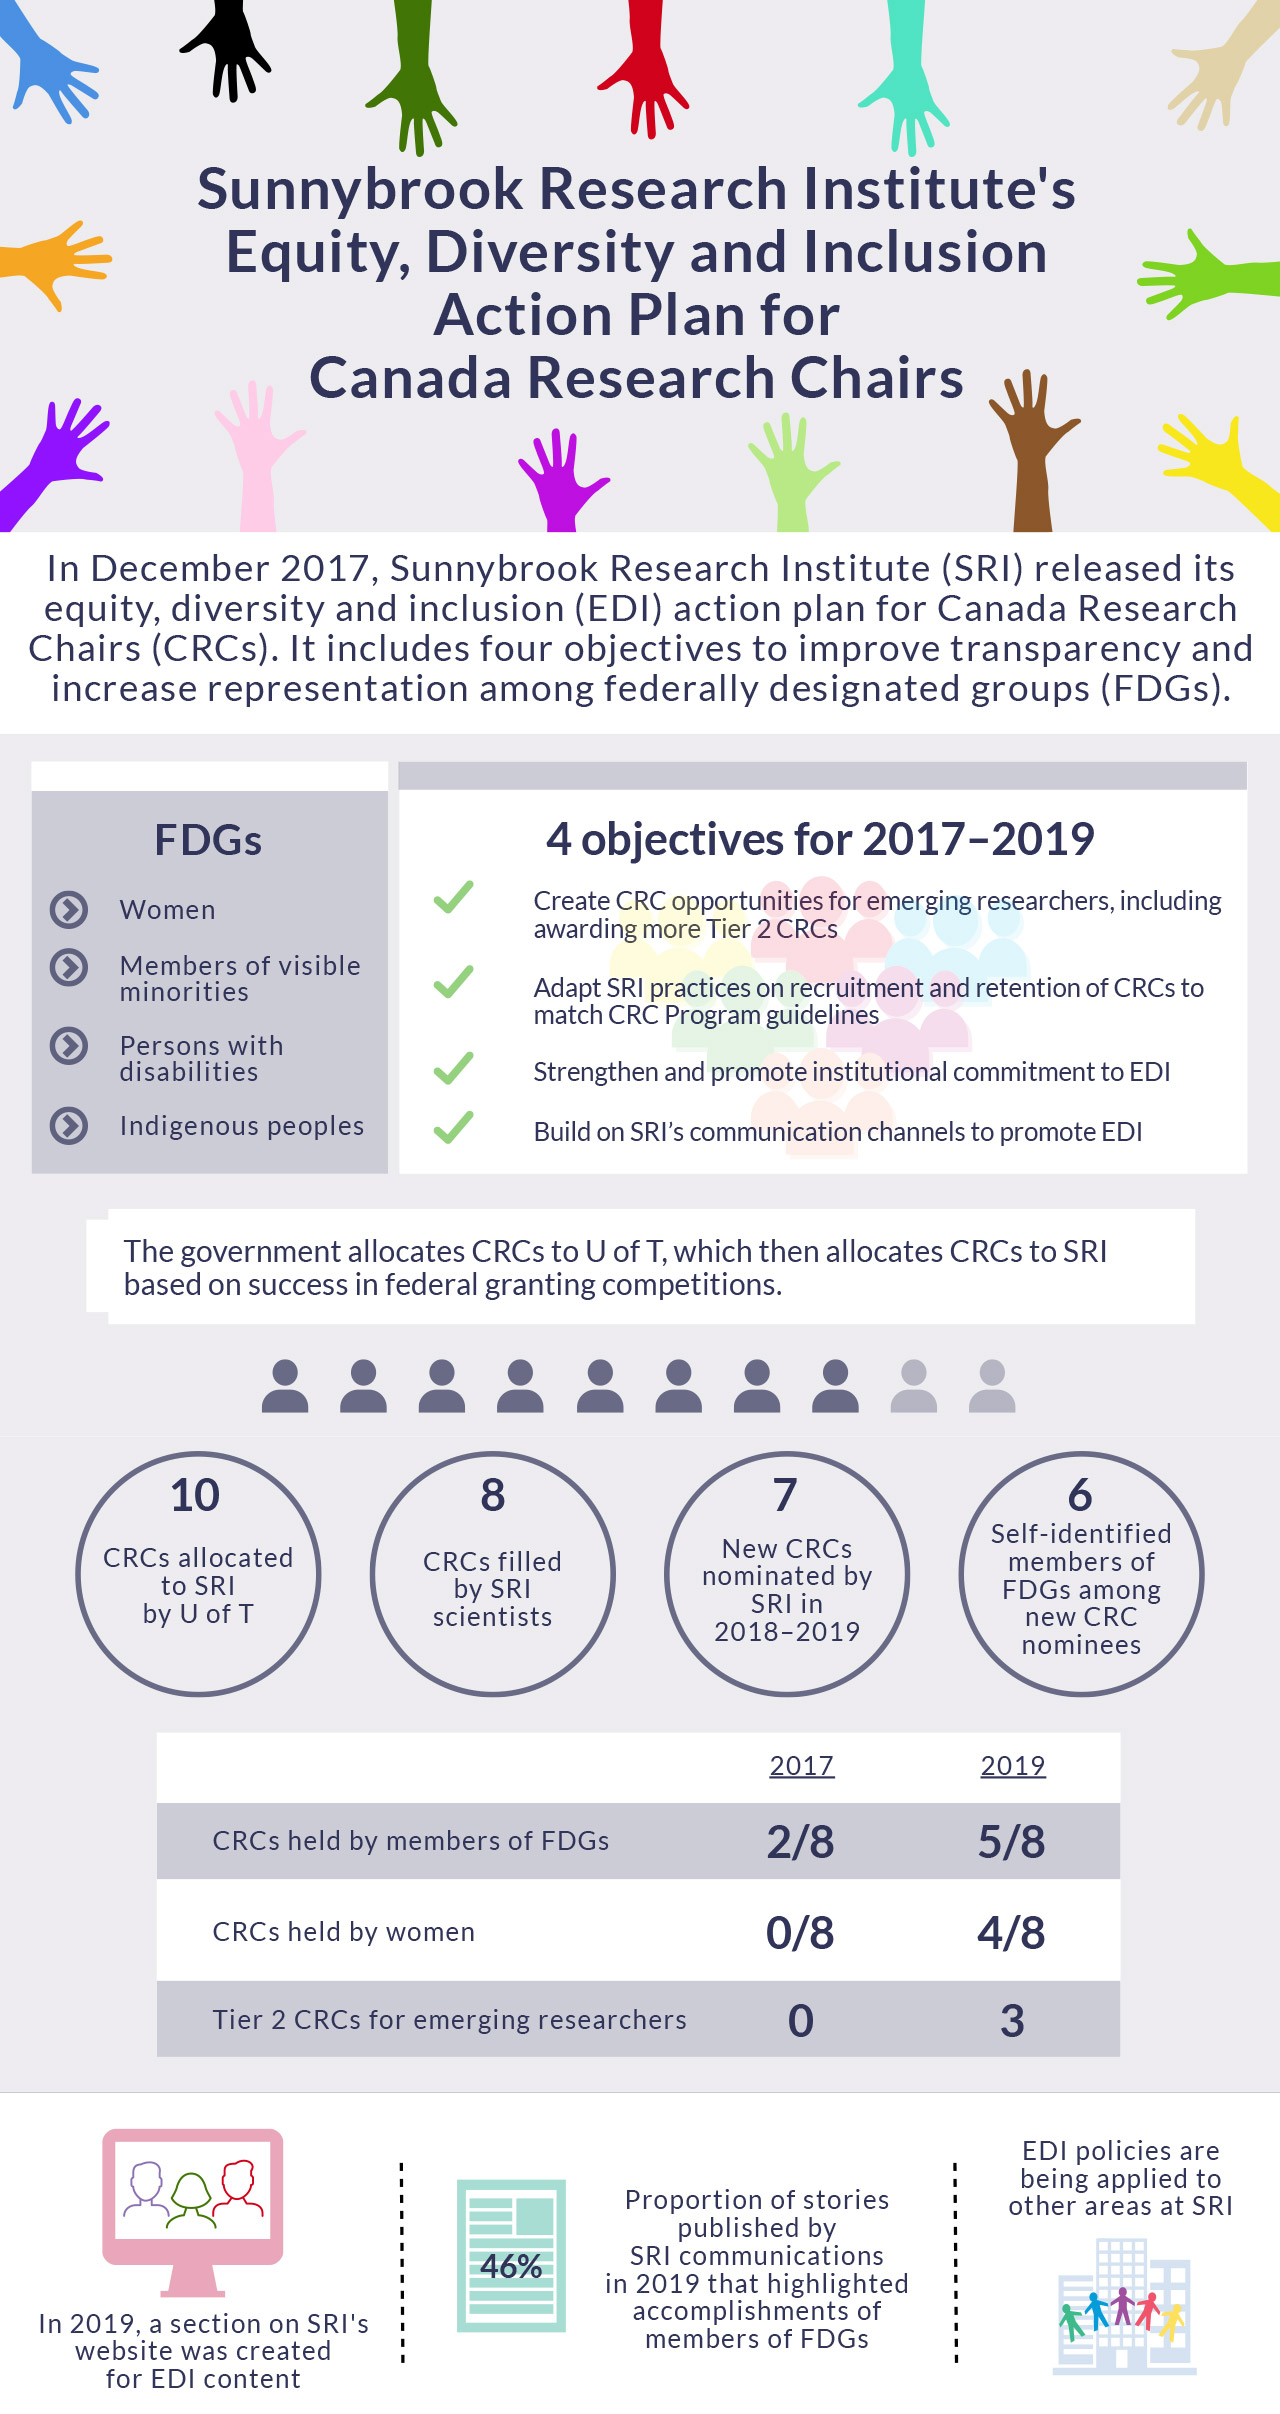 Infographic: Sunnybrook Research Institute's Equity, Diversity and Inclusion Action Plan for Canada Research Chairs